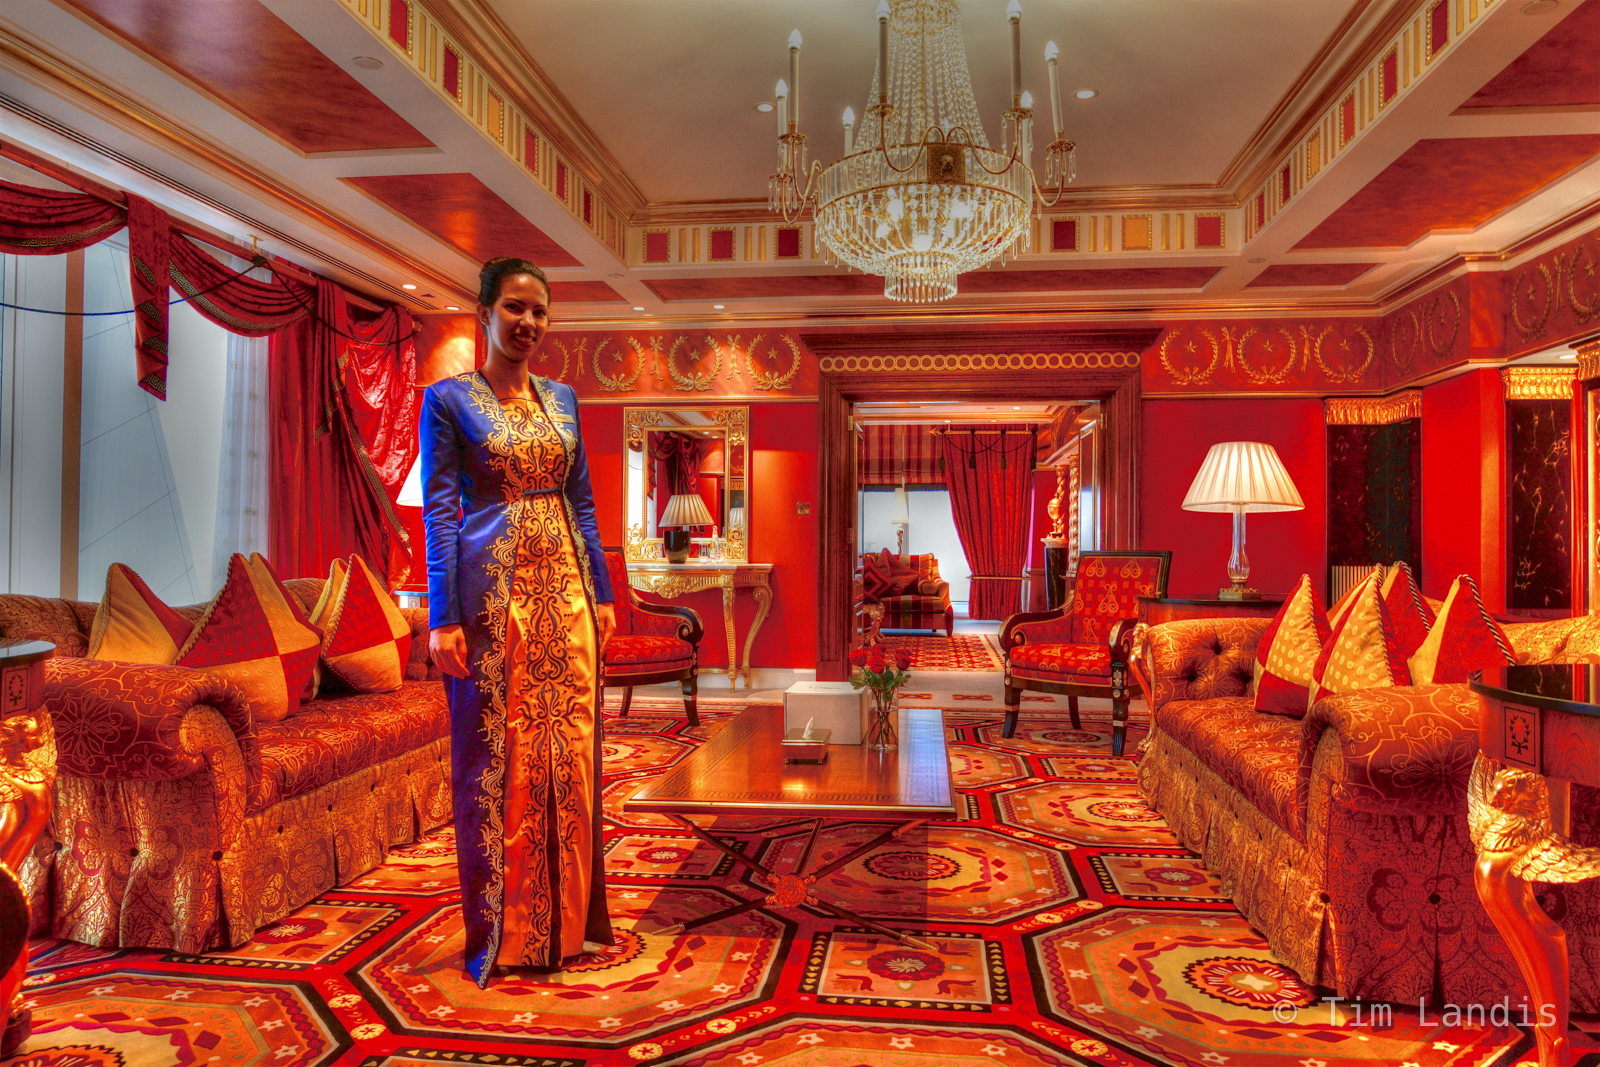 Burj al Arab, Dubai, The 7 star hotel living room, photo